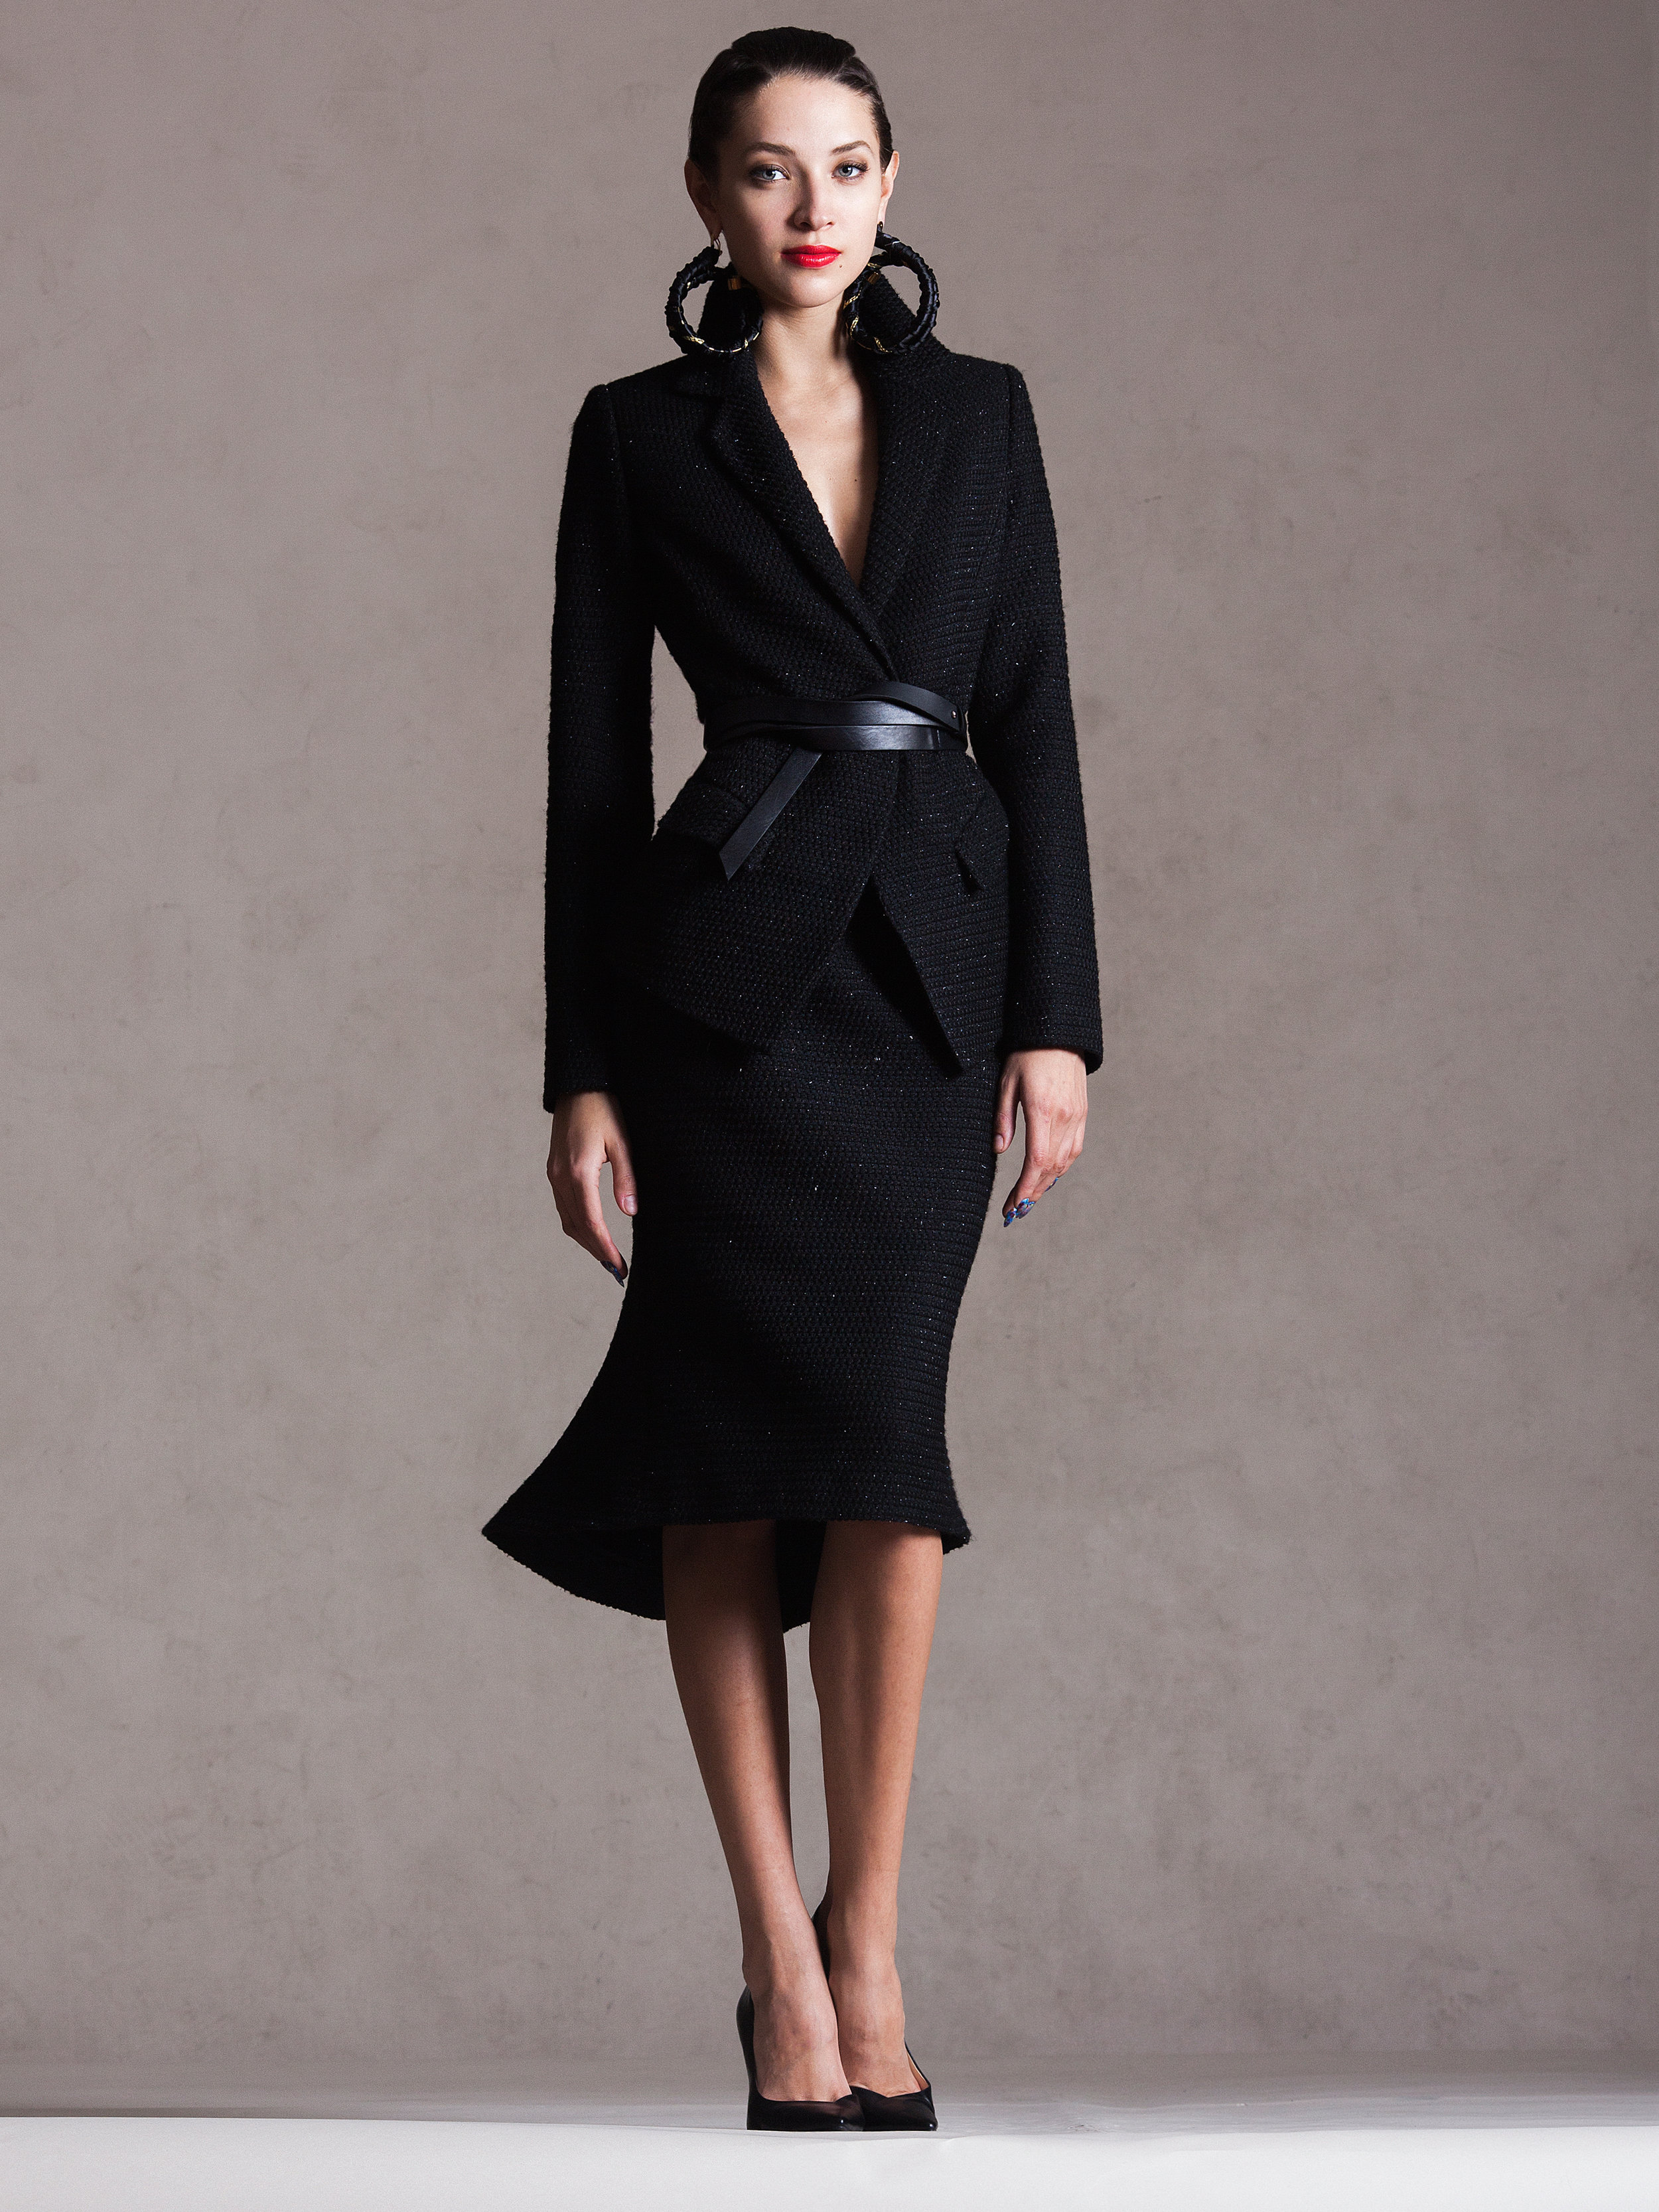 Lucian-Matis-Lookbook-20150204-020c.jpg